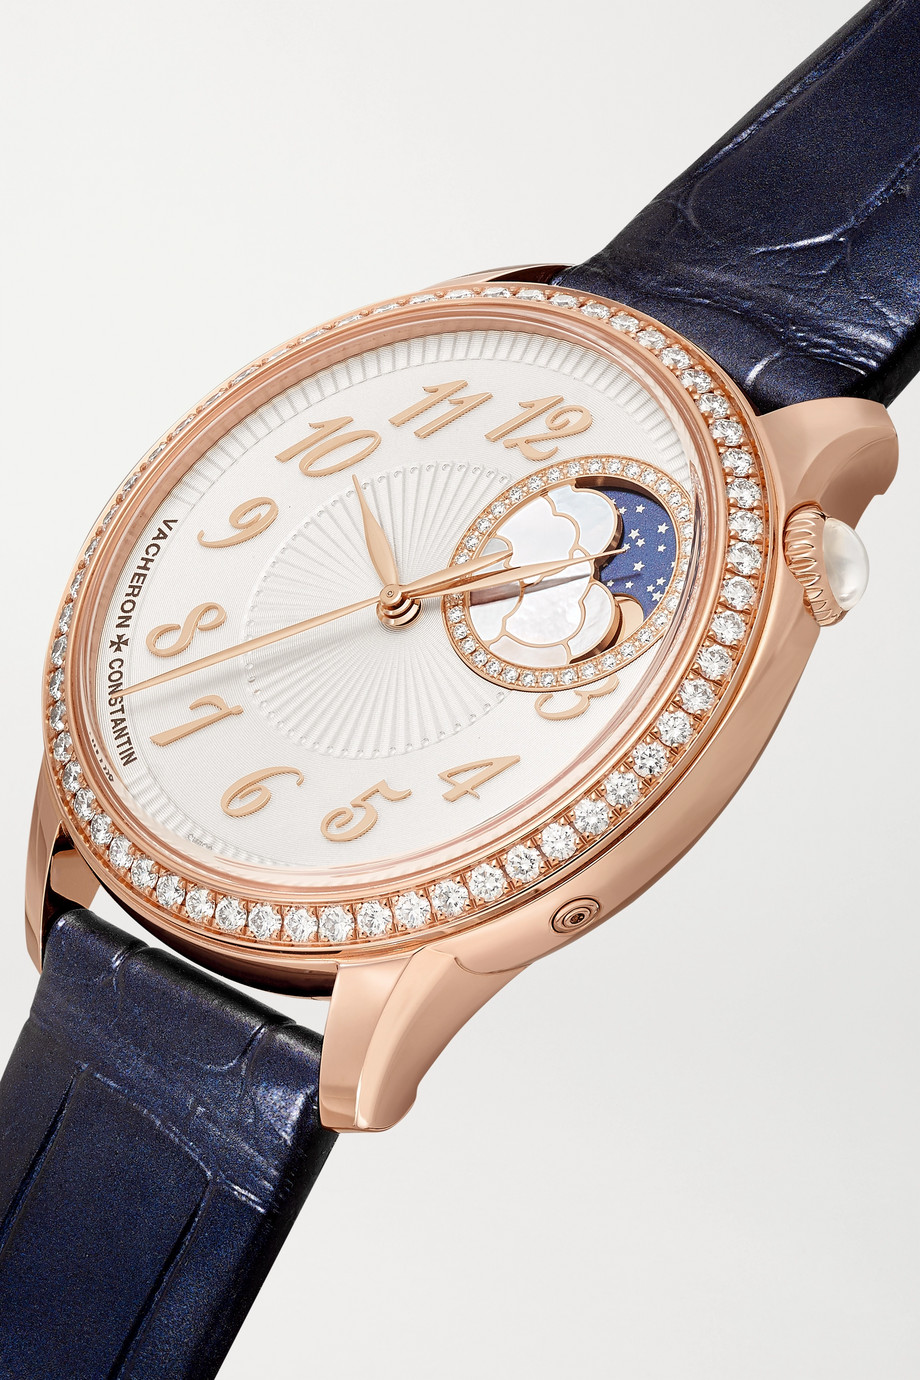 Vacheron Constantin Egérie Automatic 37mm 18-karat pink gold and diamond watch